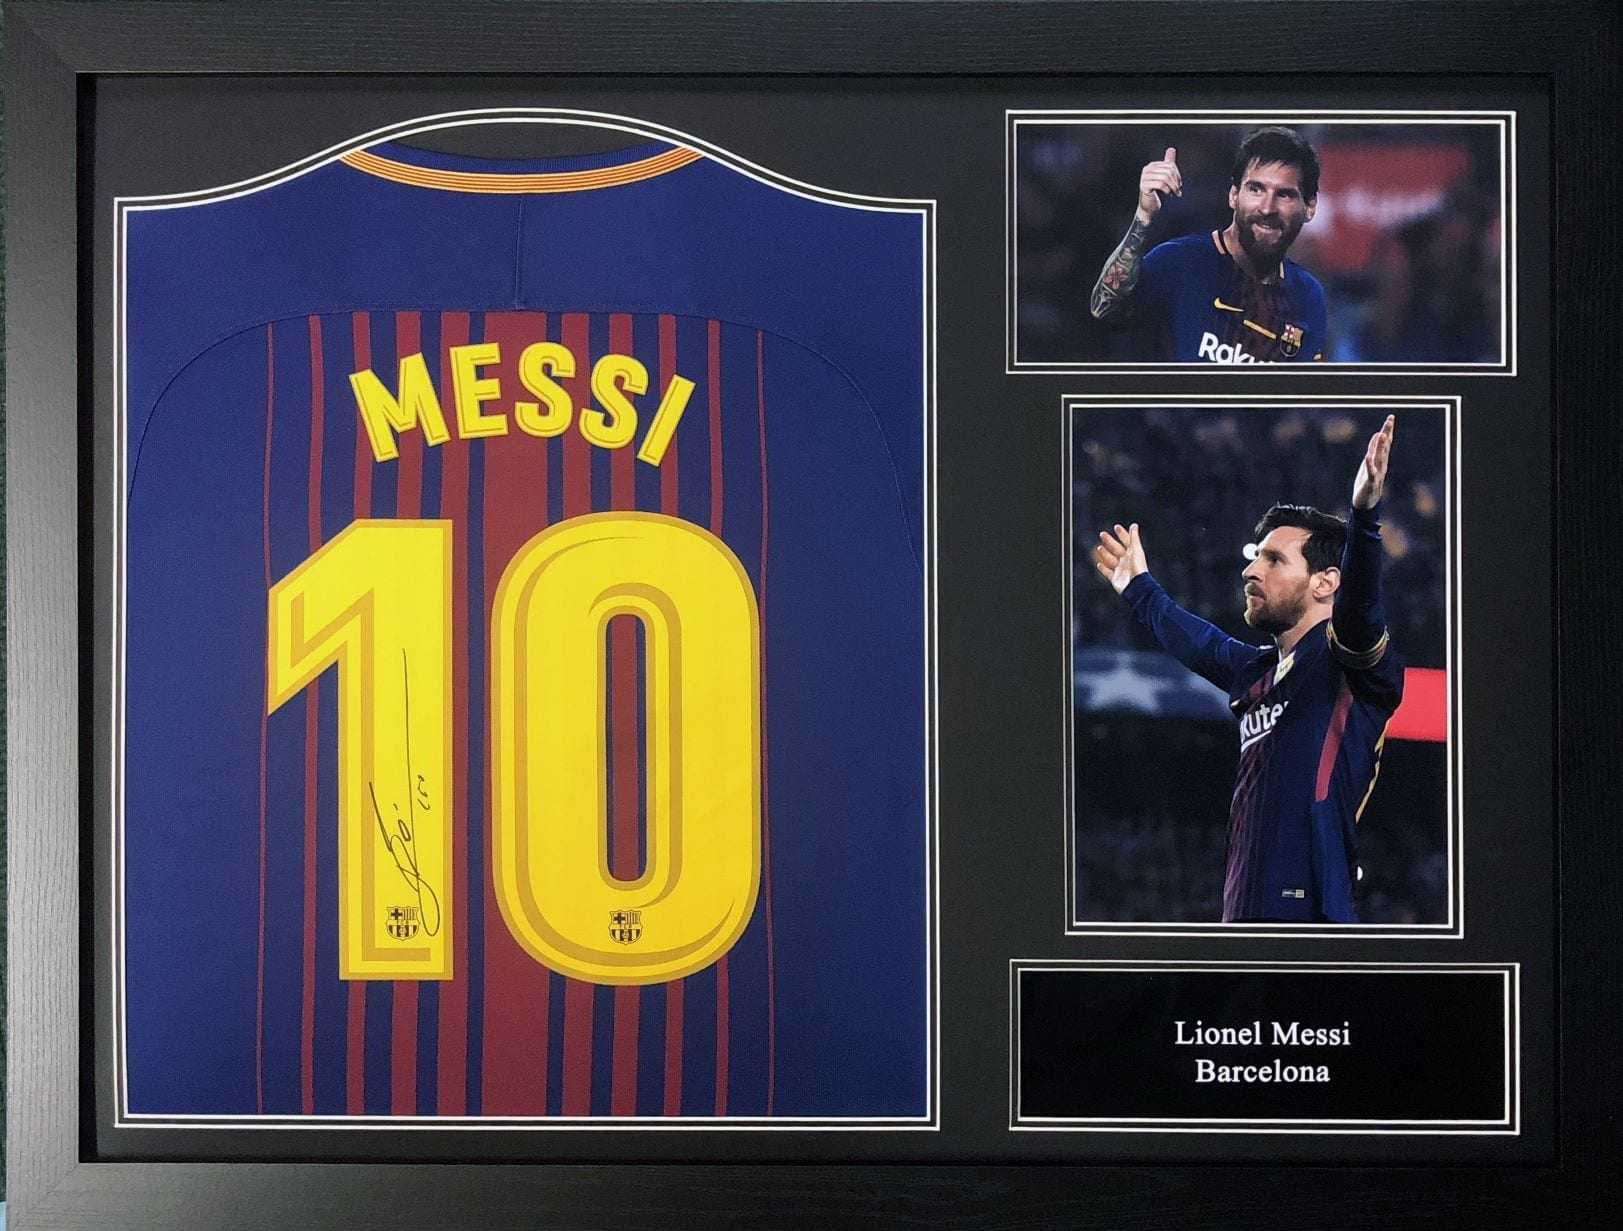 big sale c1b68 8b480 Lionel Messi Signed Shirt – Framed Silhouette or Photo's